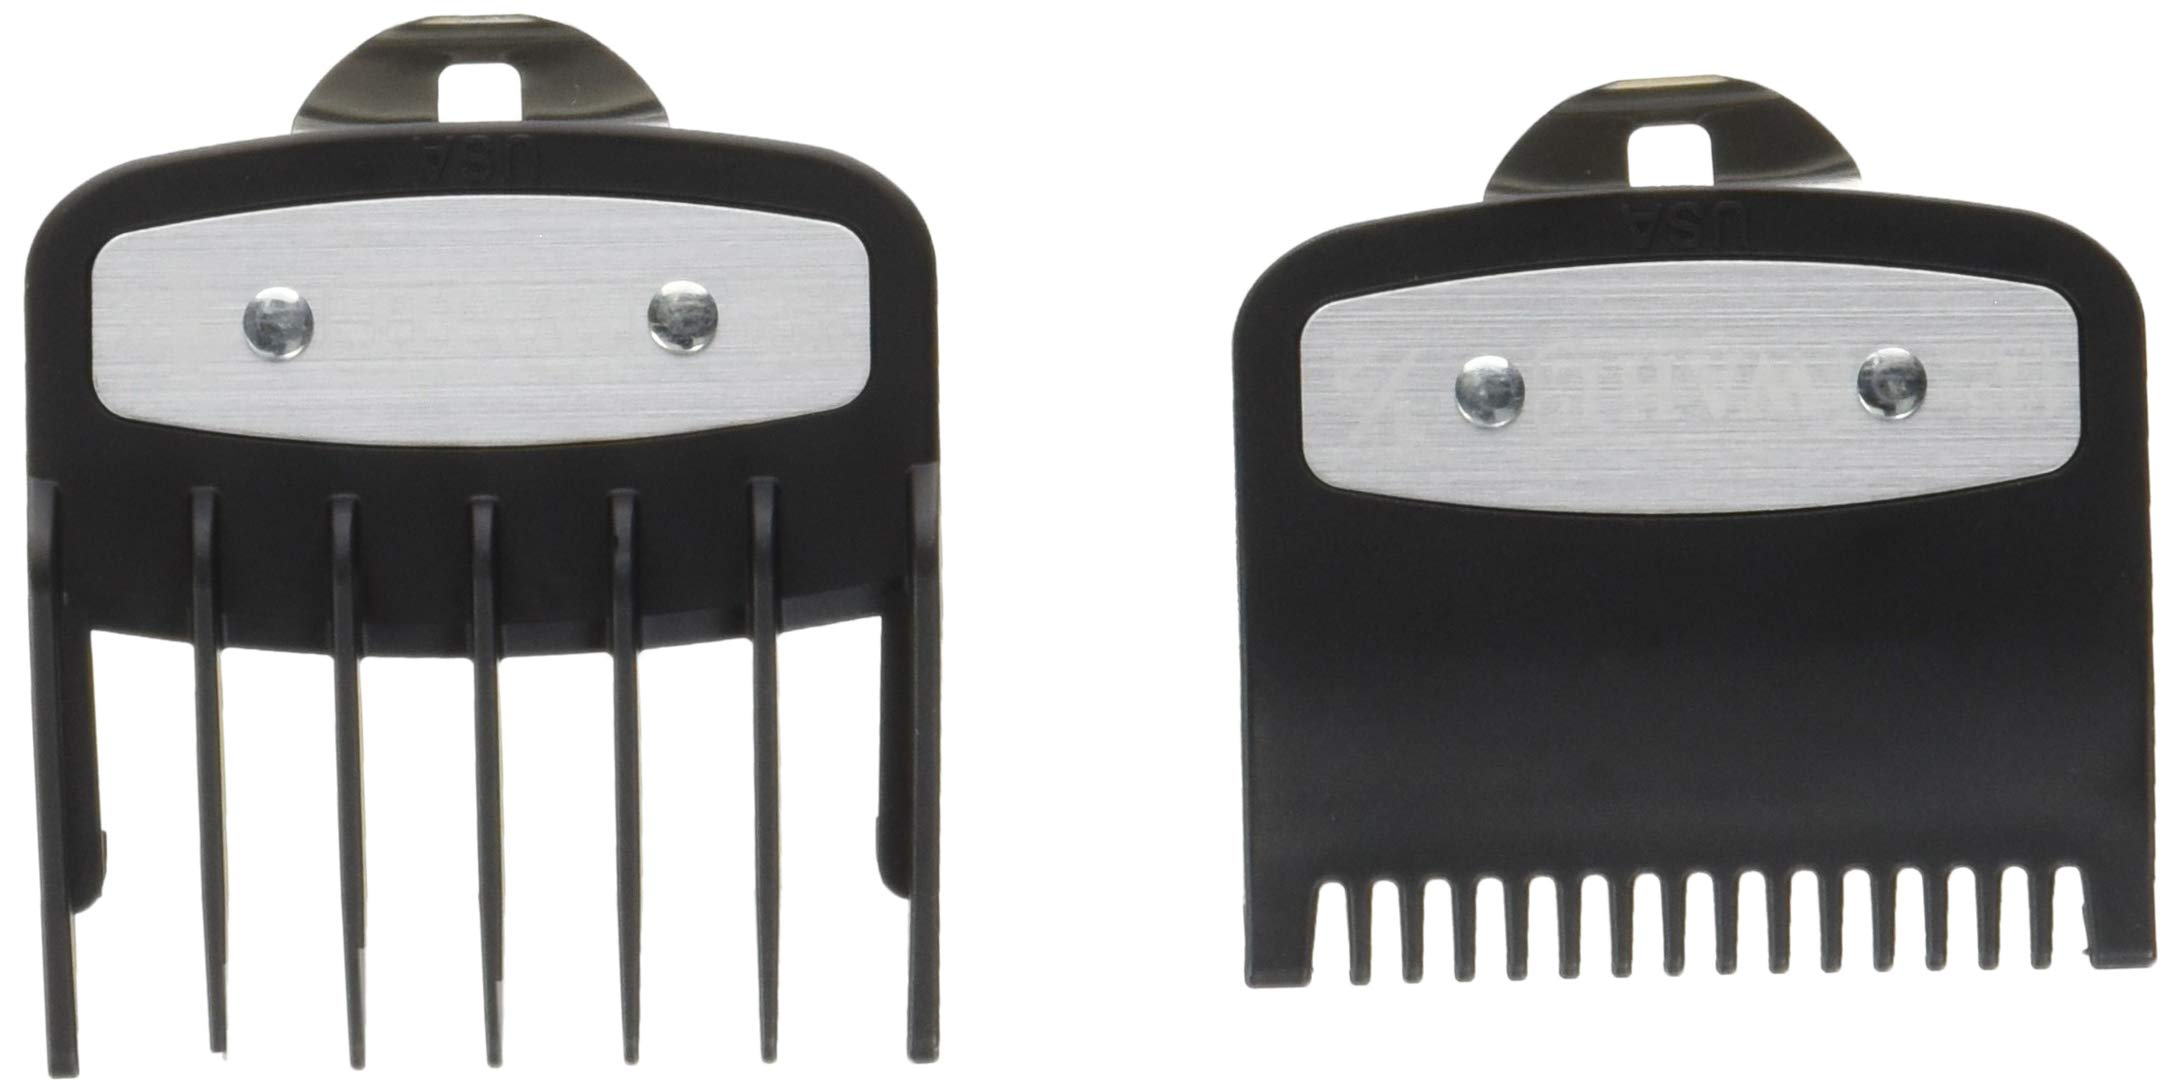 Professional Versatile Premium Cutting Guide Comb with Metal Clip 1/2'' &1 1/2'' Combo Set #3354-1100-1000 for All Wahl Clippers/Trimmer